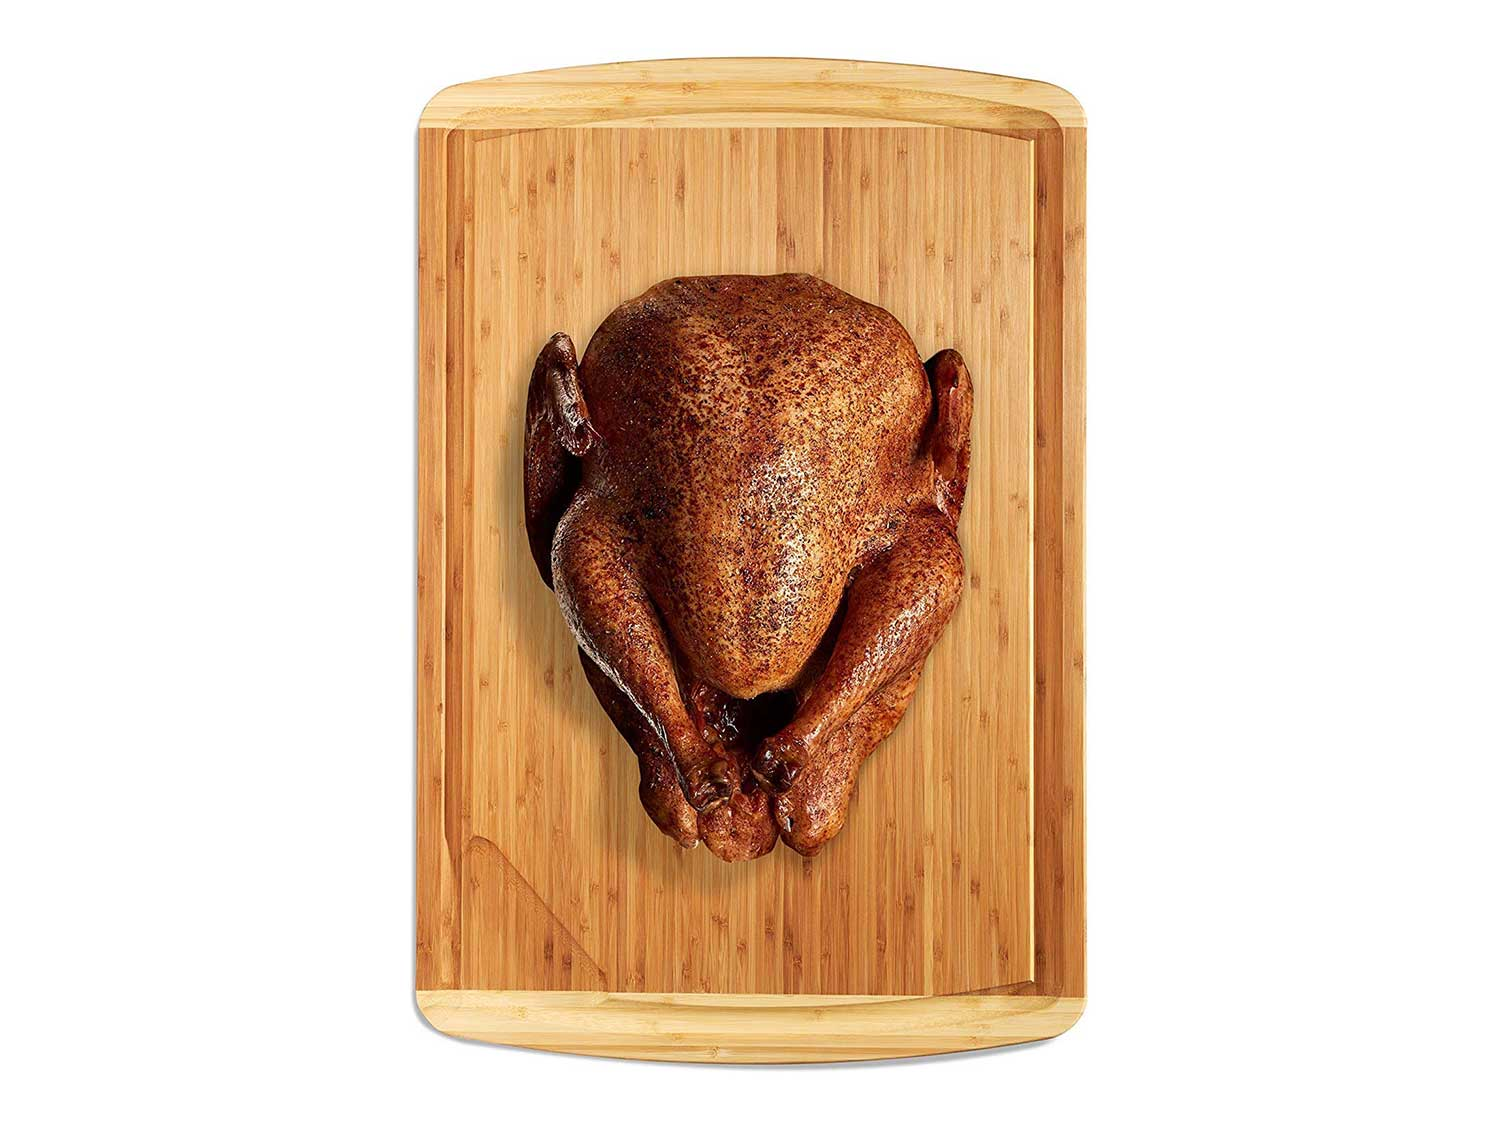 Extra Large Wood Butcher Block Cutting Board for Carving Turkey